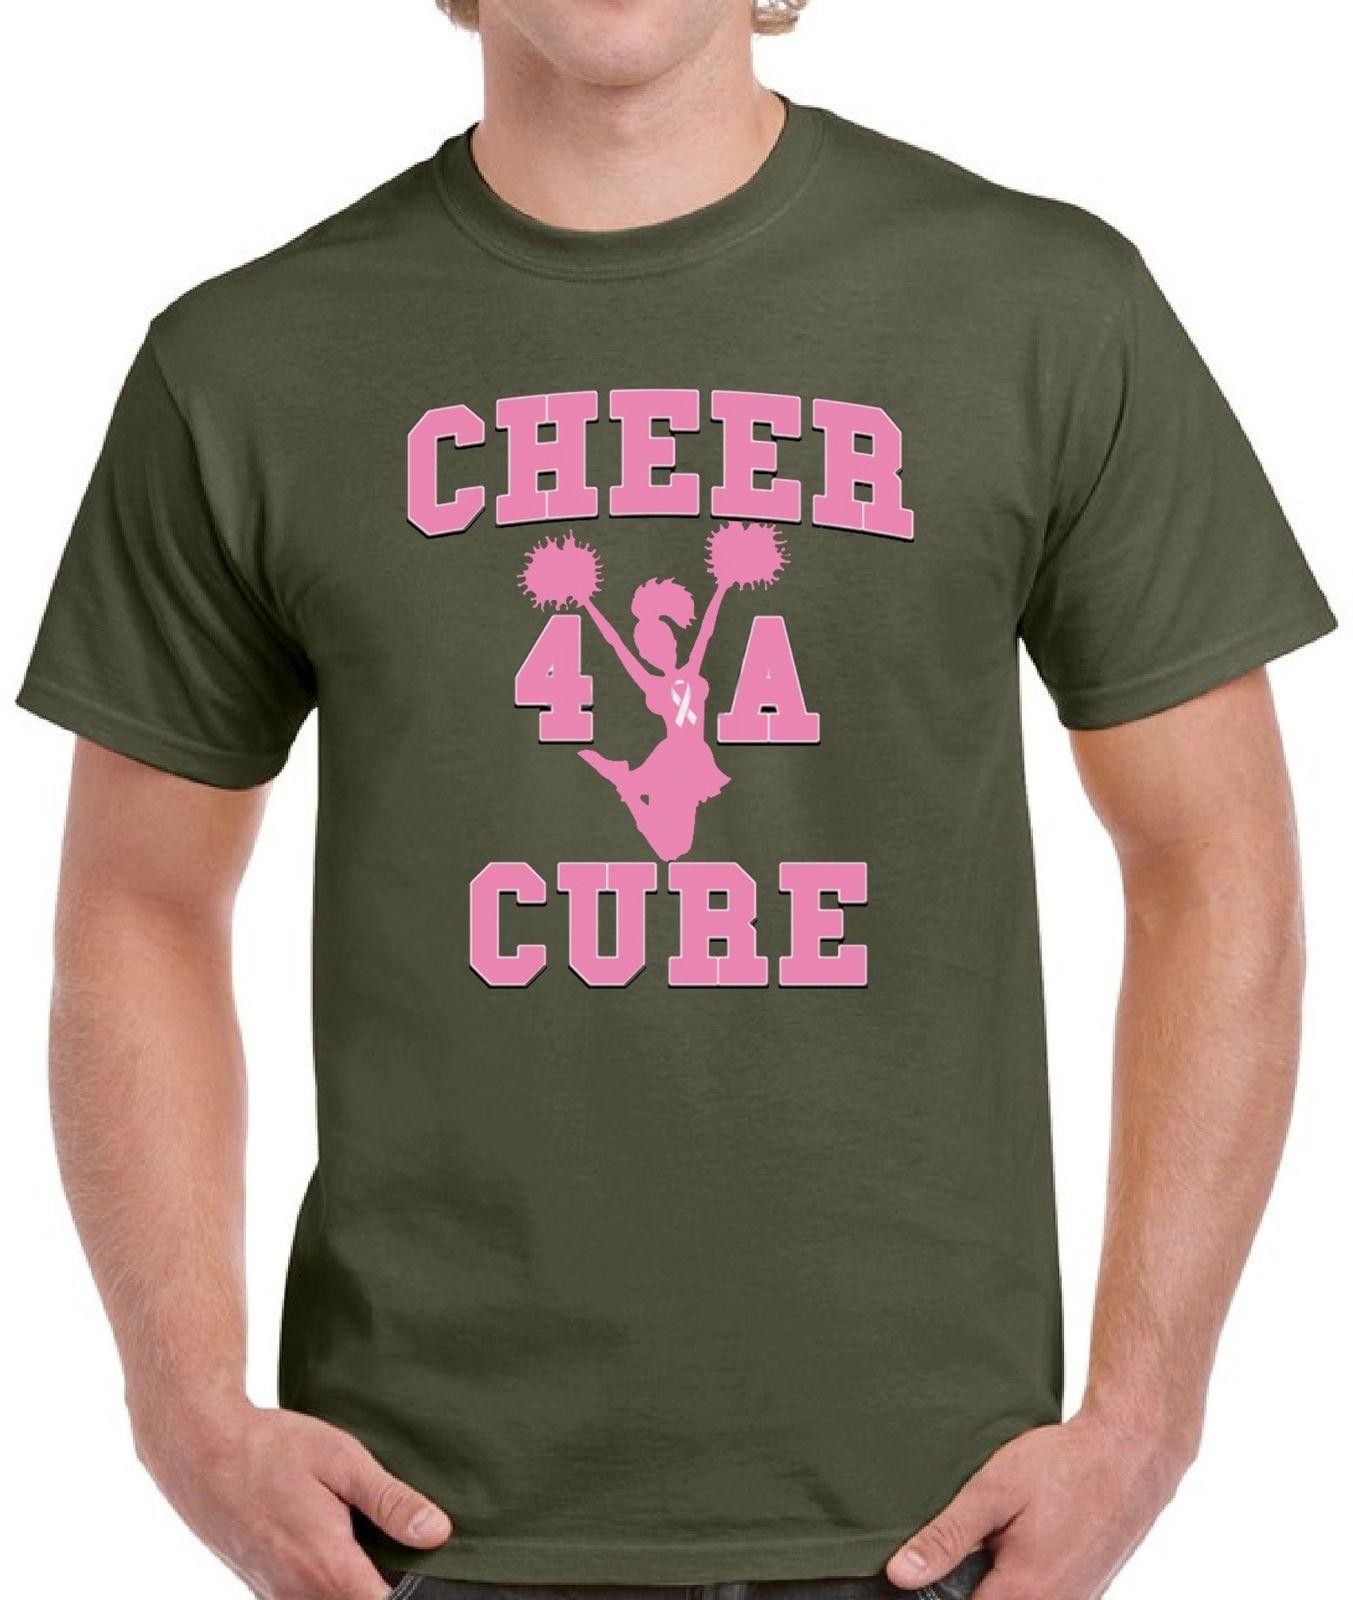 1ee6e4d9f Breast Cancer Shirts Tops T Shirts For Men Men'S Cheer 4 A Cure Funny  Unisex Casual Buy Shirt Ti Shirt From Fastshipdirect, $12.96| DHgate.Com